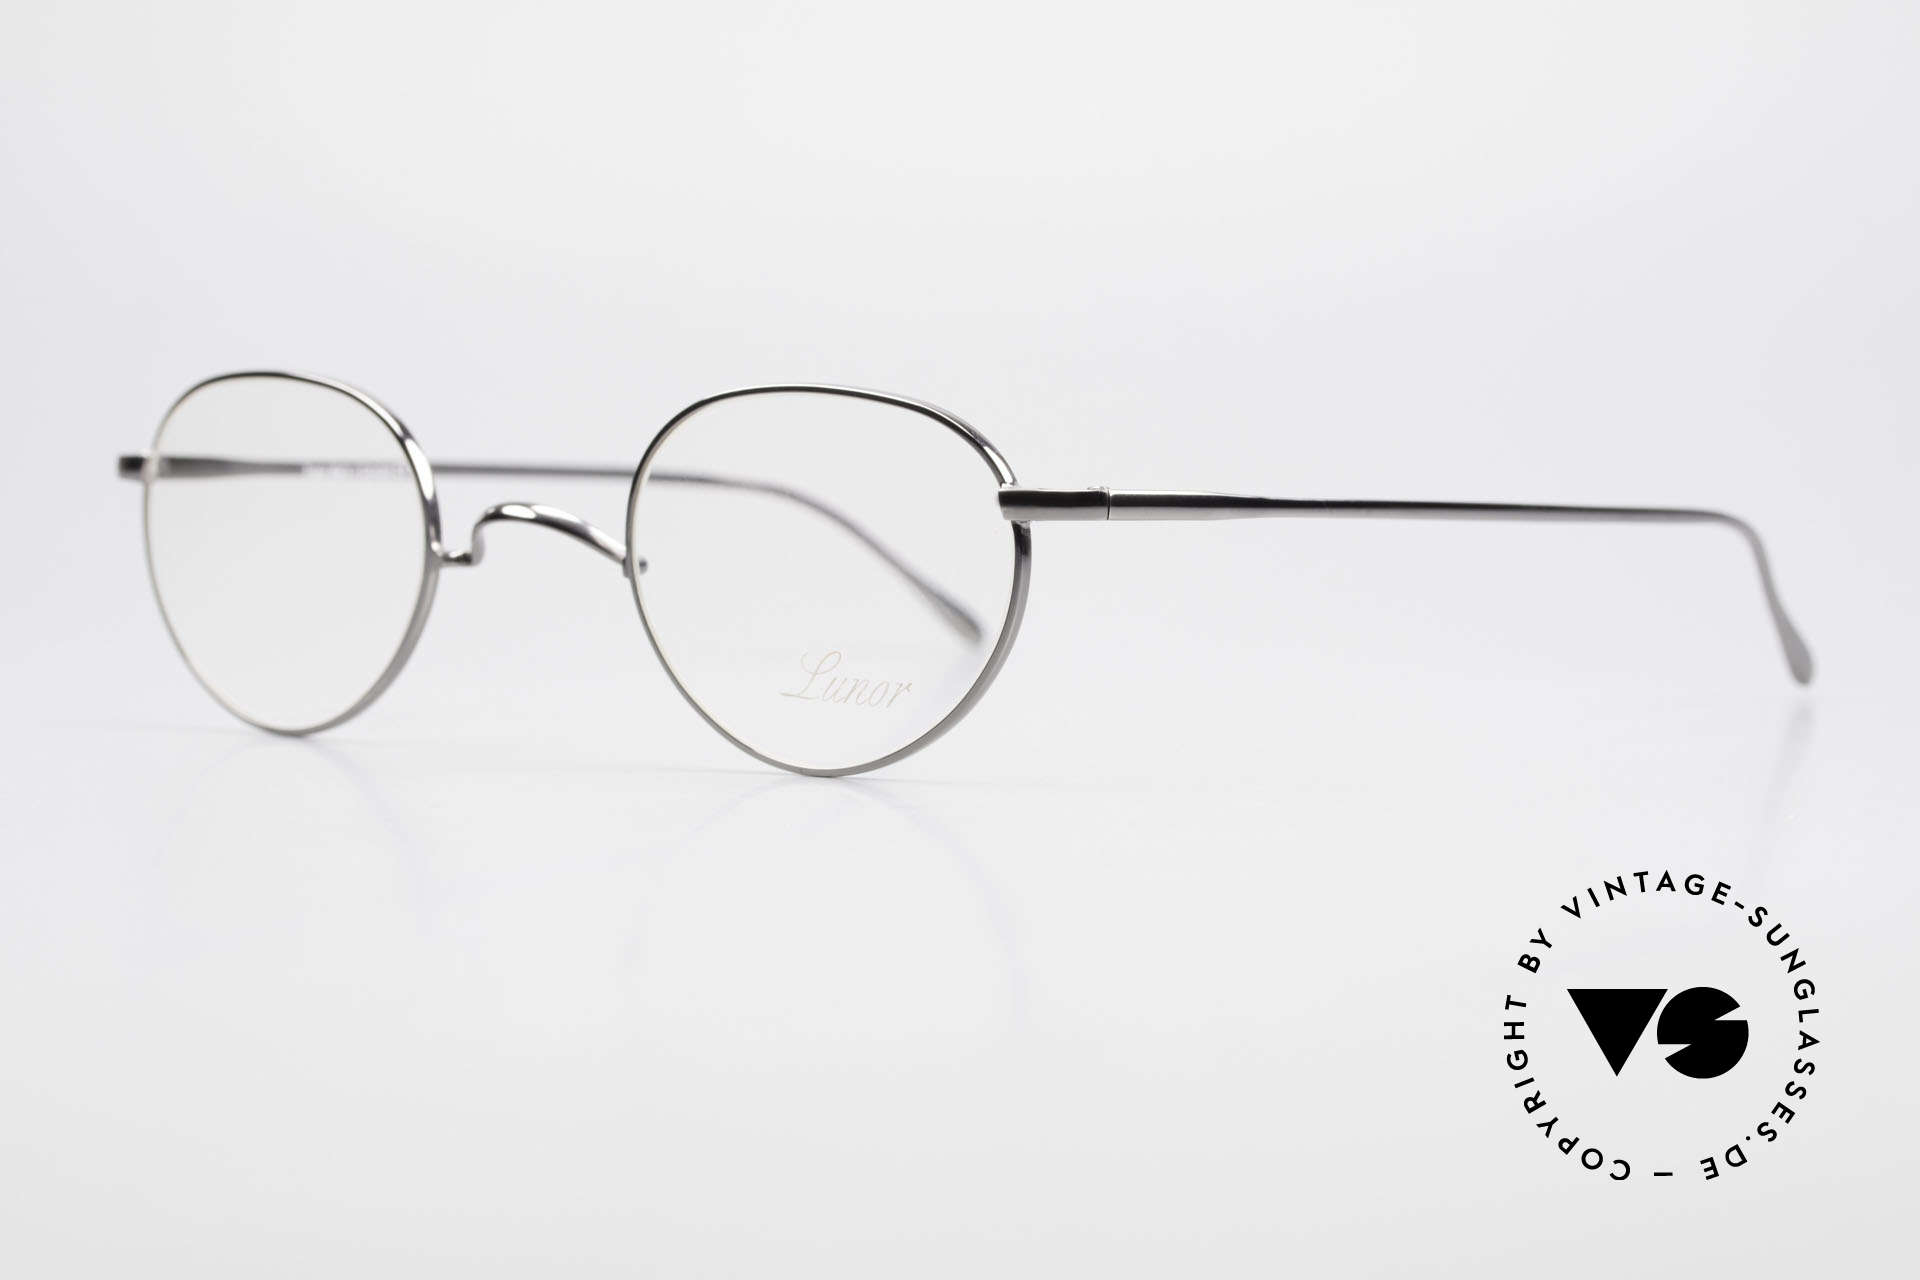 """Lunor Club 501 GM Metal Glasses Anatomic Bridge, well-known for the """"W-bridge"""" & the plain frame designs, Made for Men and Women"""